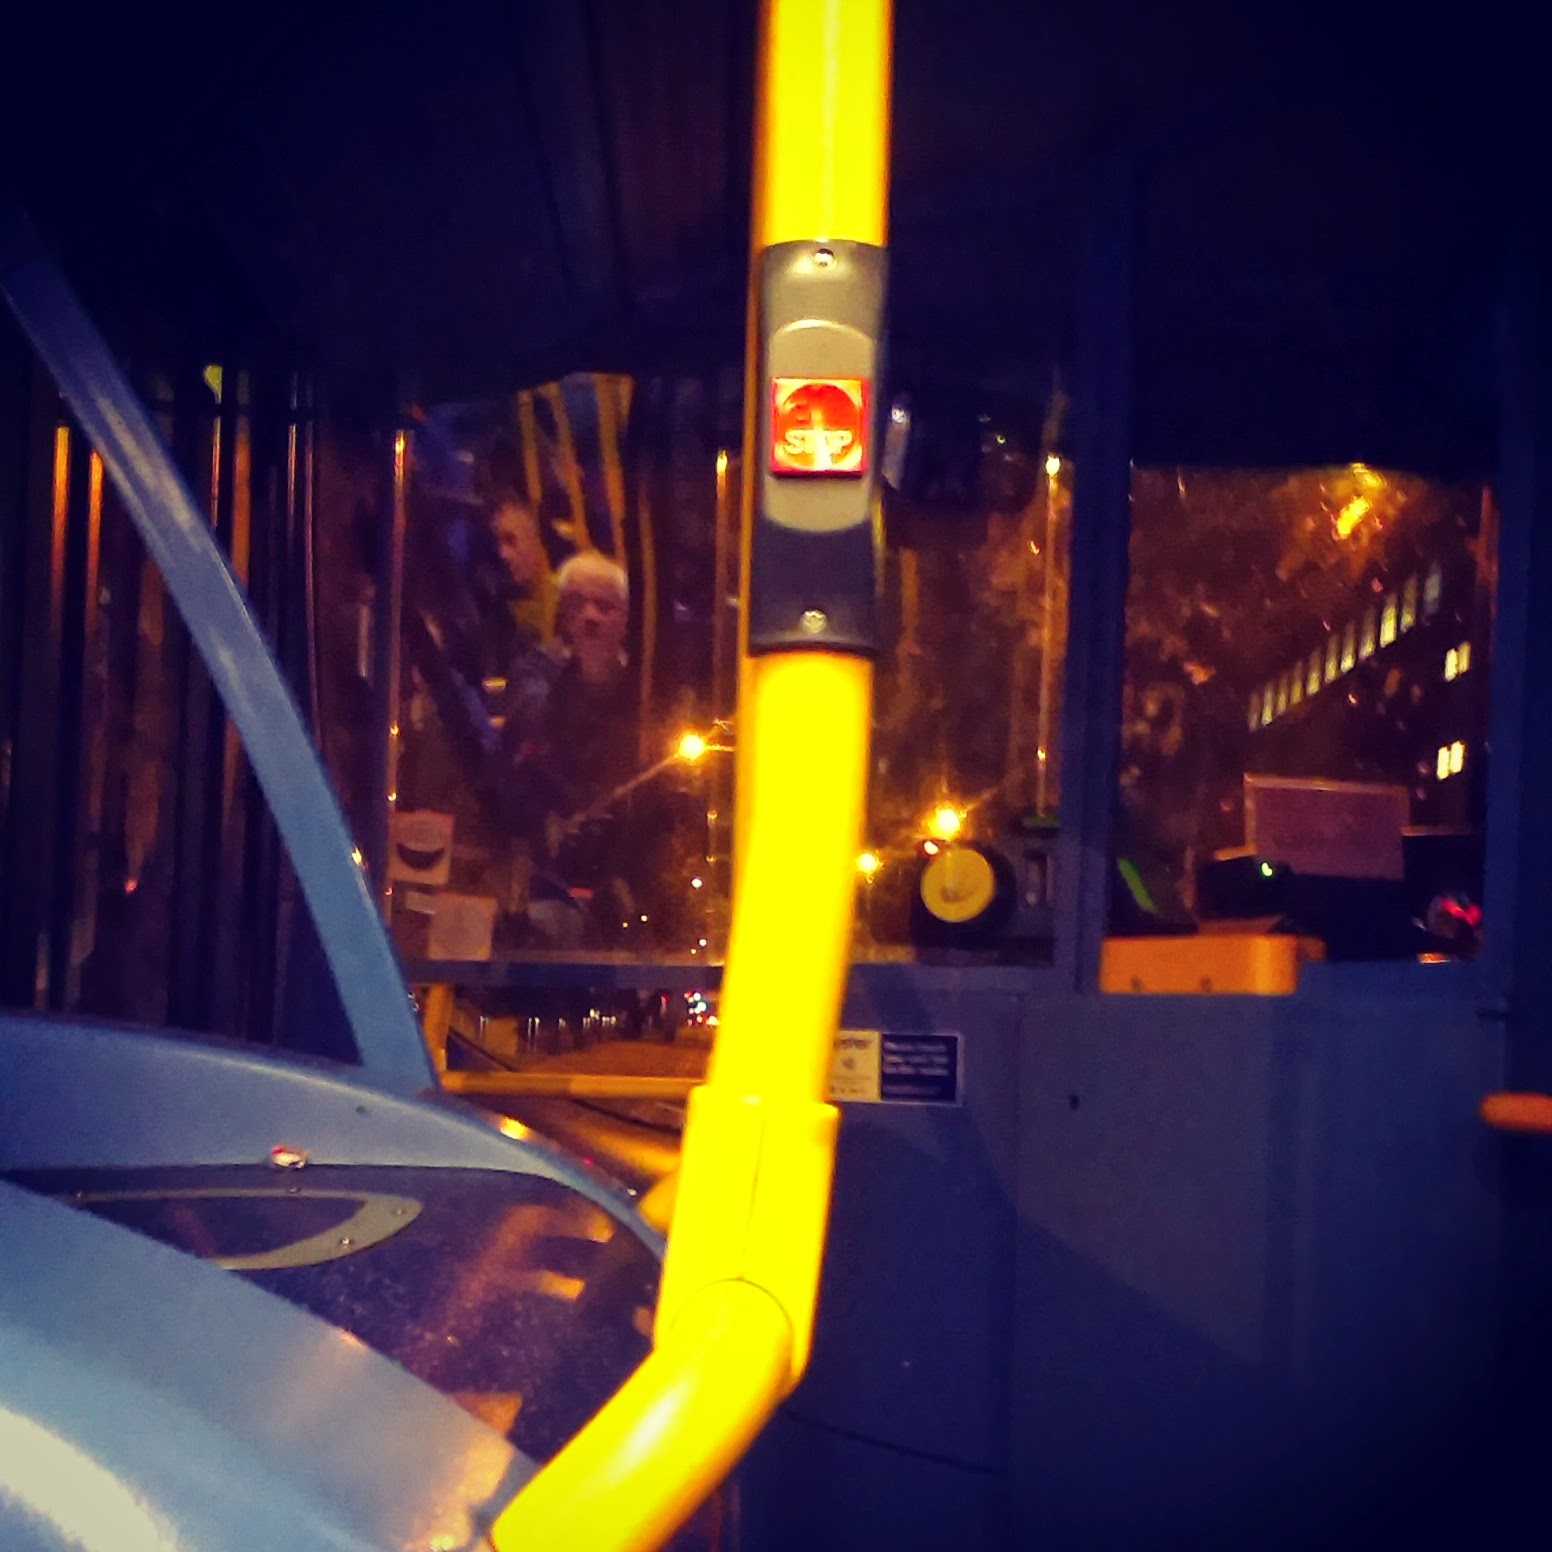 5pm - on a bus